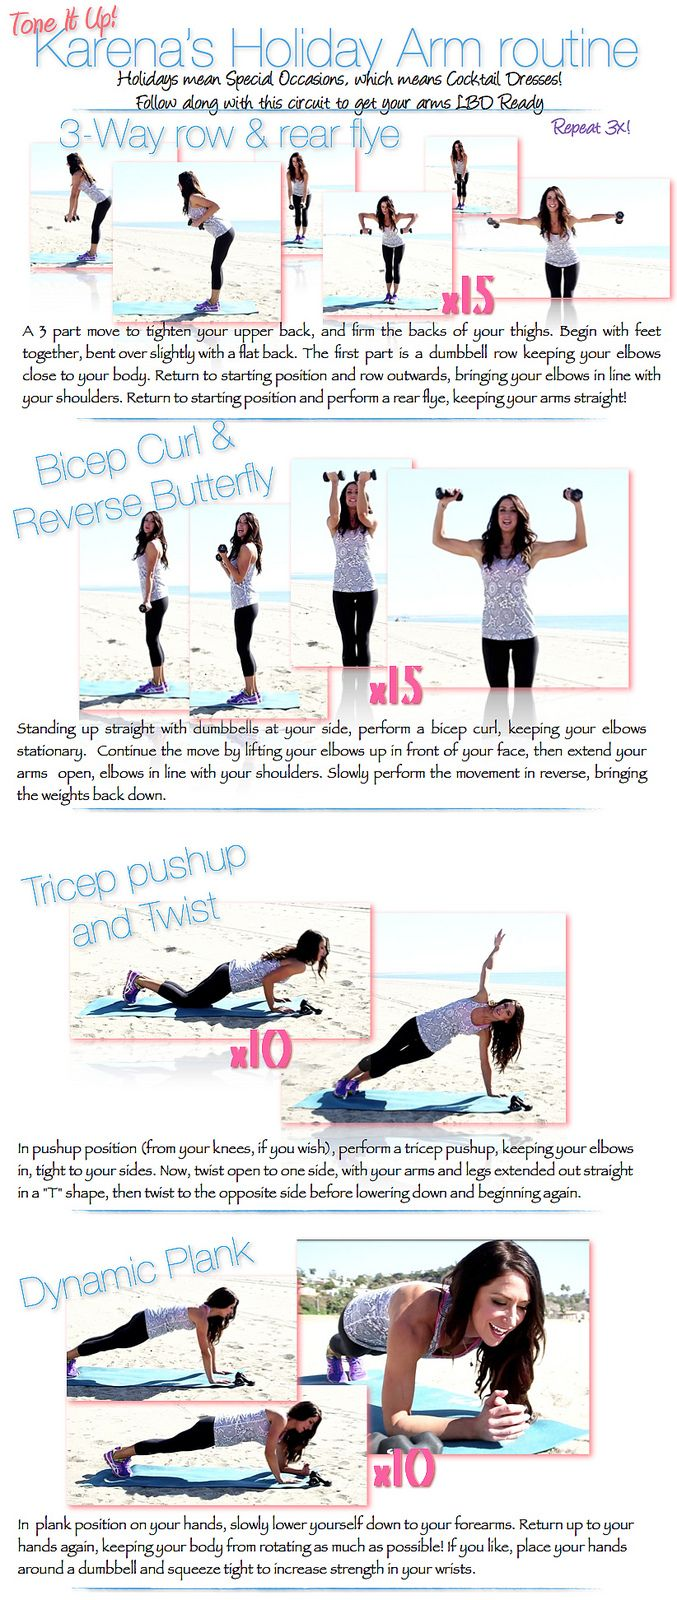 Top 3 workouts for Slim & Toned Arms for SUMMER! #BIKINISERIES | ToneItUp.com